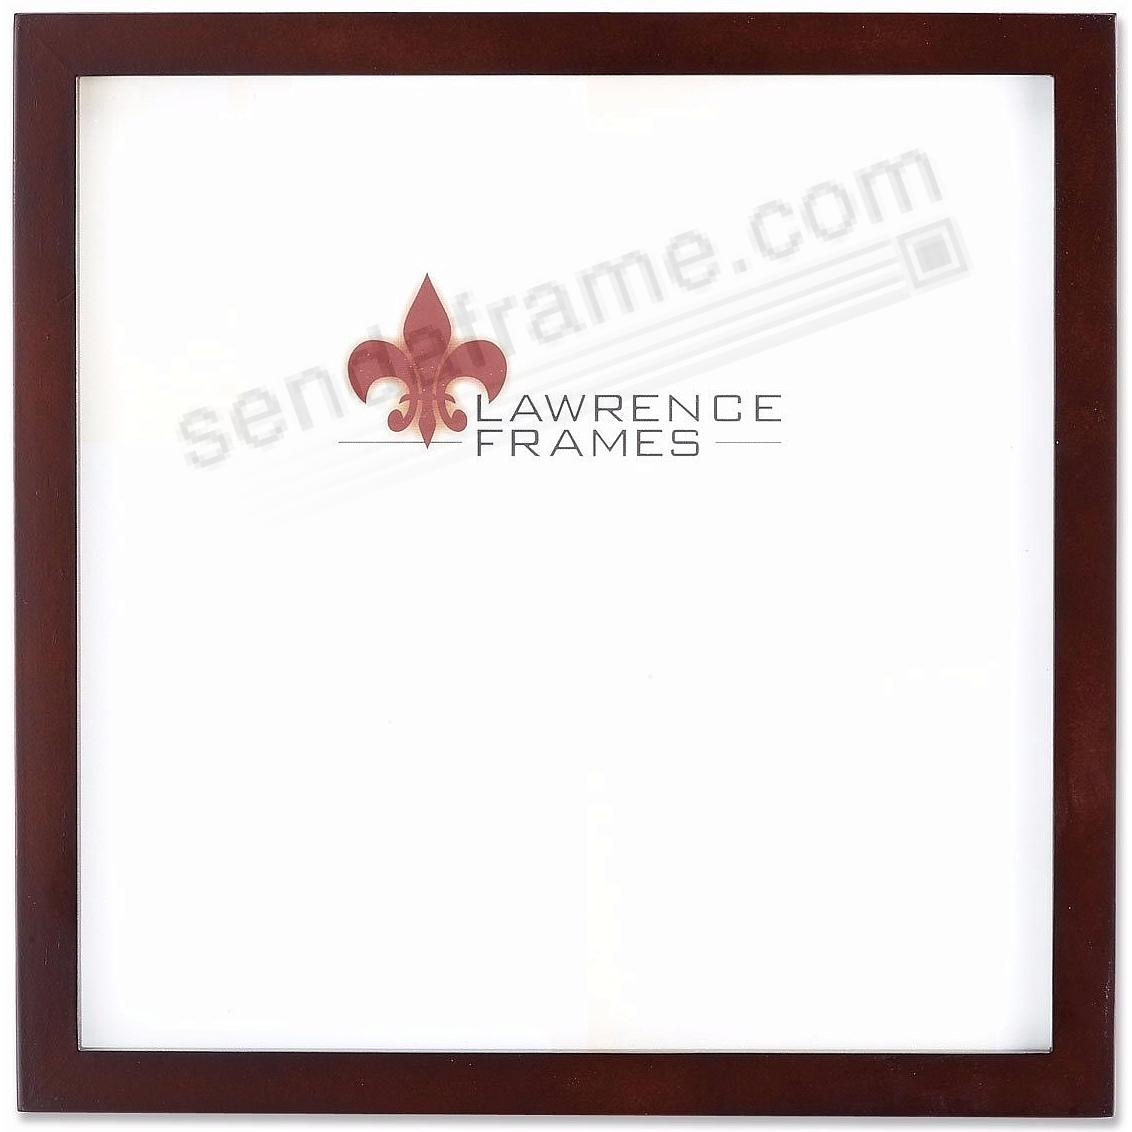 SQUARE CORNER Expresso-Brown Stain classic 12x12 frame by Lawrence Frames®